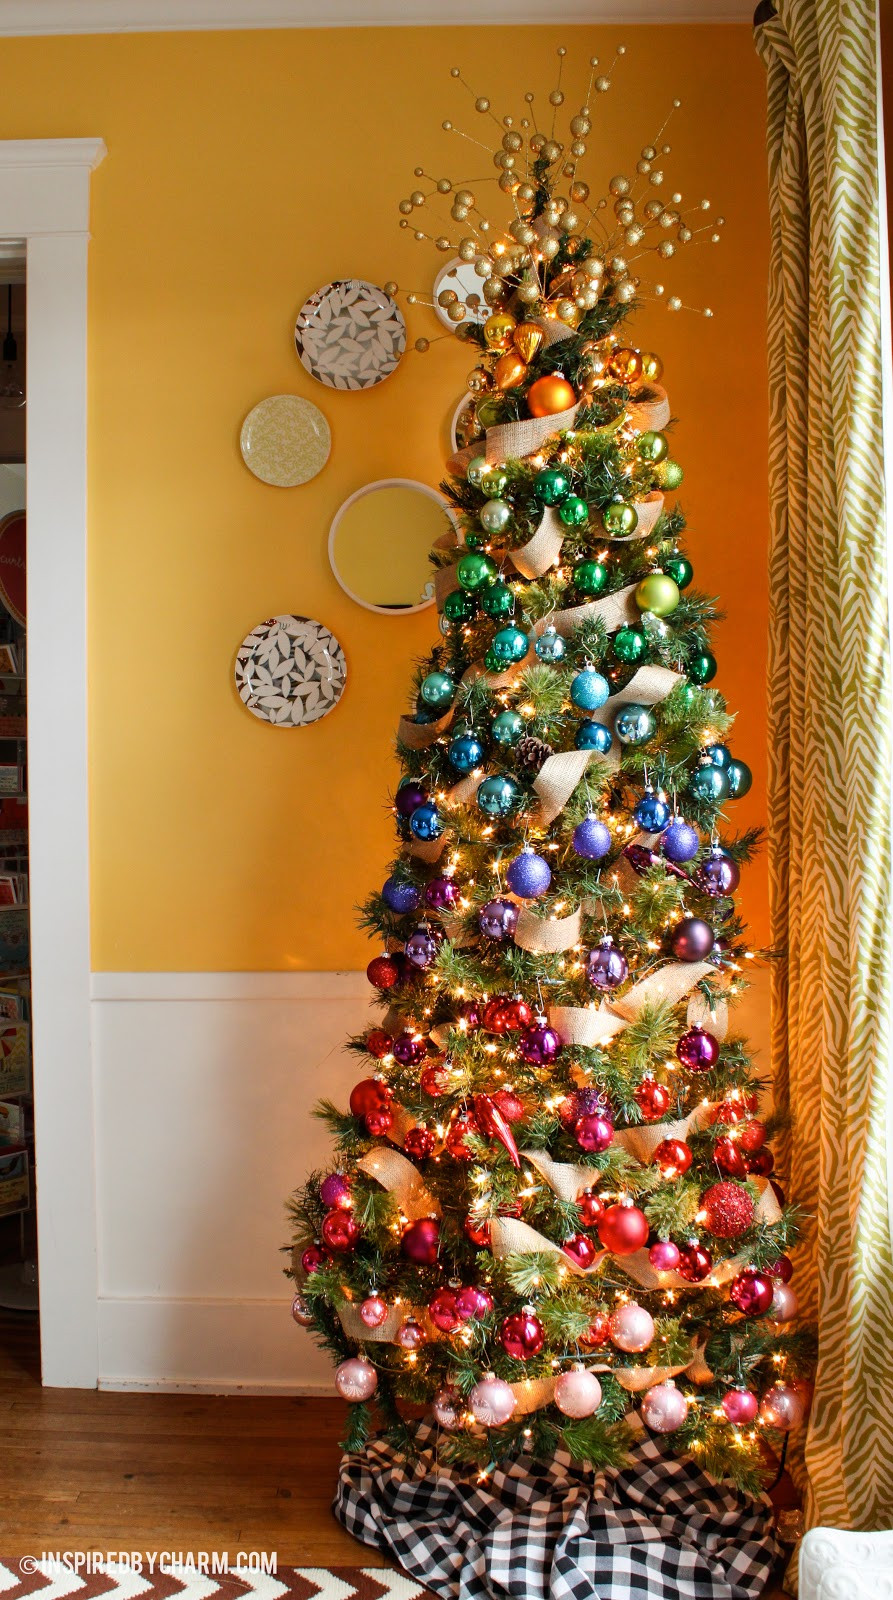 Awesome 30 Christmas Tree Ideas for An Unfor Table Holiday Christmas Tree and Decorations Of Delightful 50 Pictures Christmas Tree and Decorations